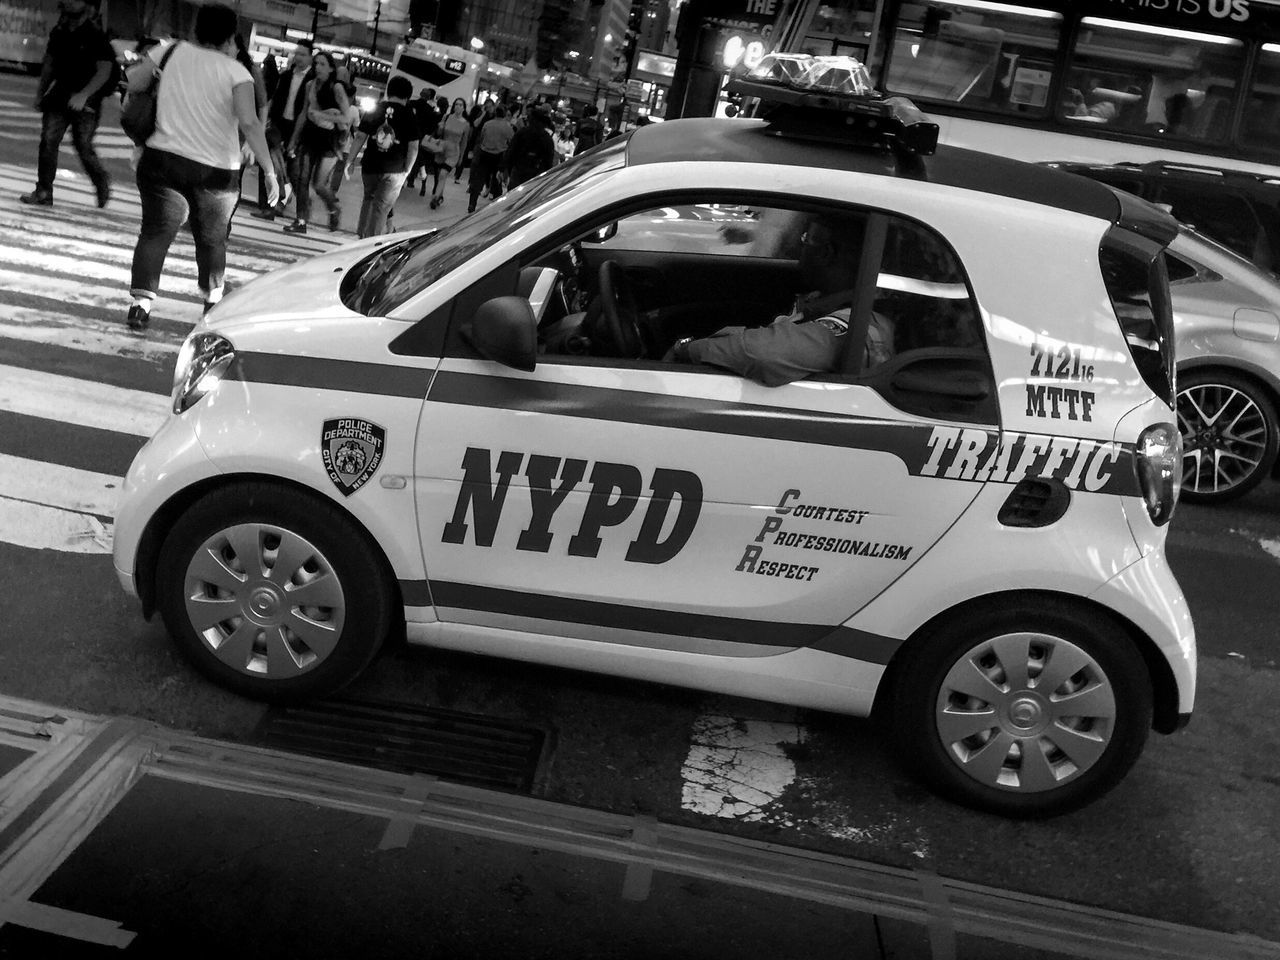 Serve with pride... Police Car NYPD Manhattan Traffic Police  Tiny Car Black And White Bnw City Life